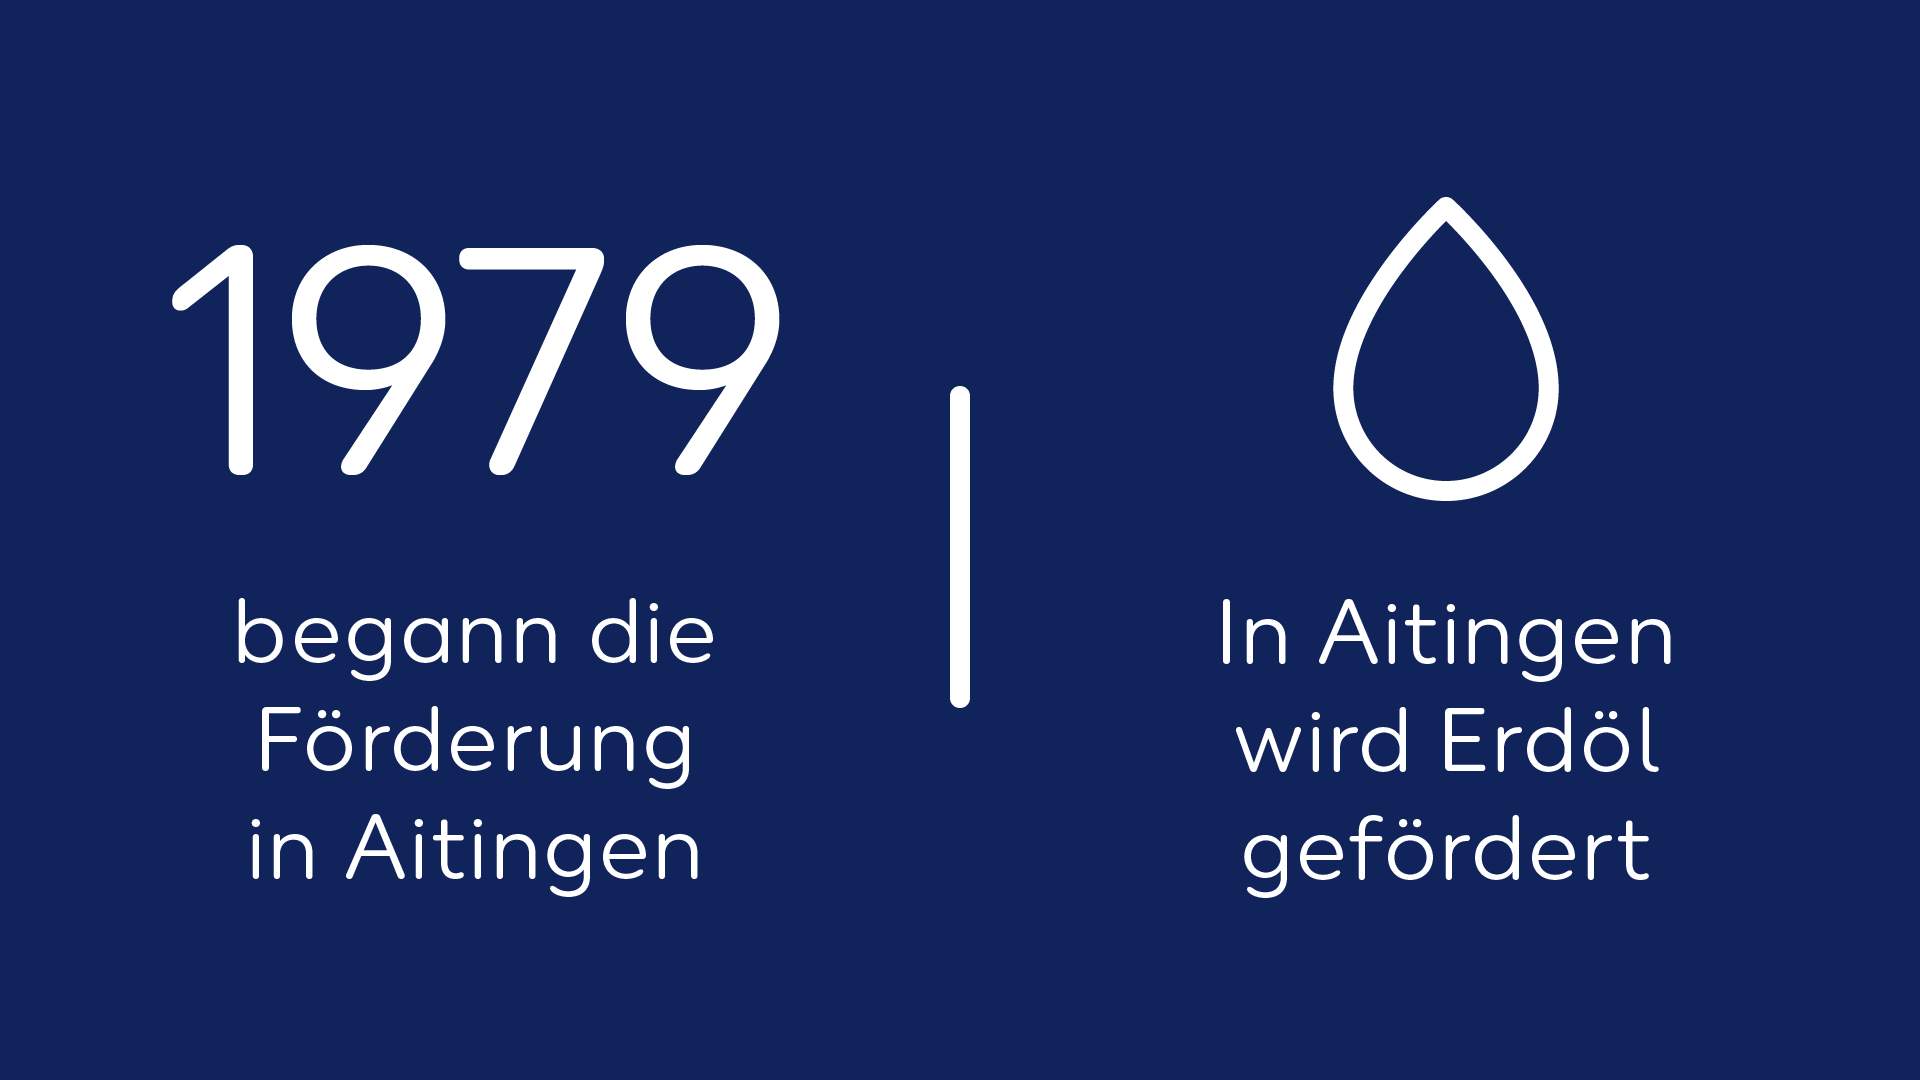 Wintershall Dea Quickfact Aitingen